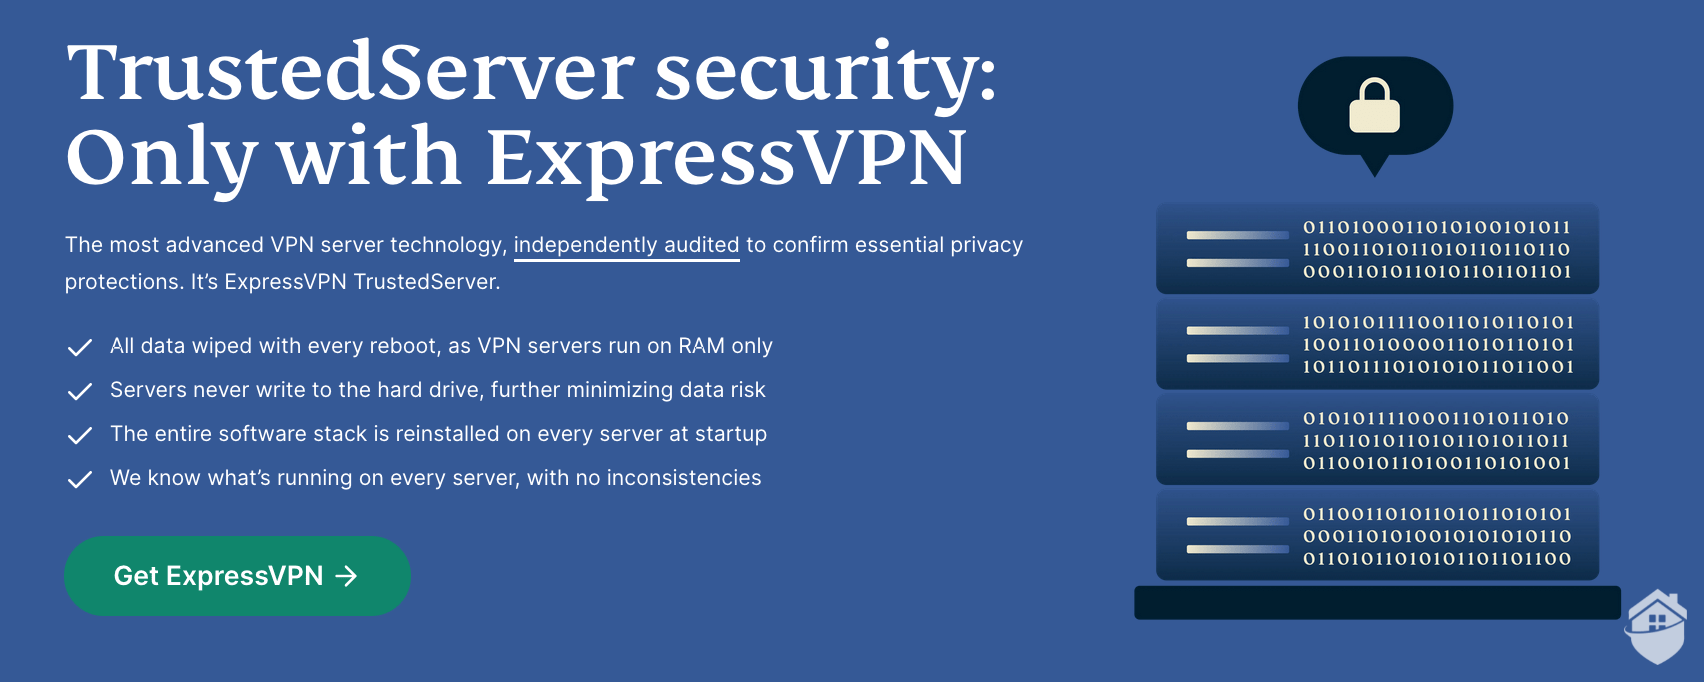 ExpressVPN may have the most secure servers on the VPN market today